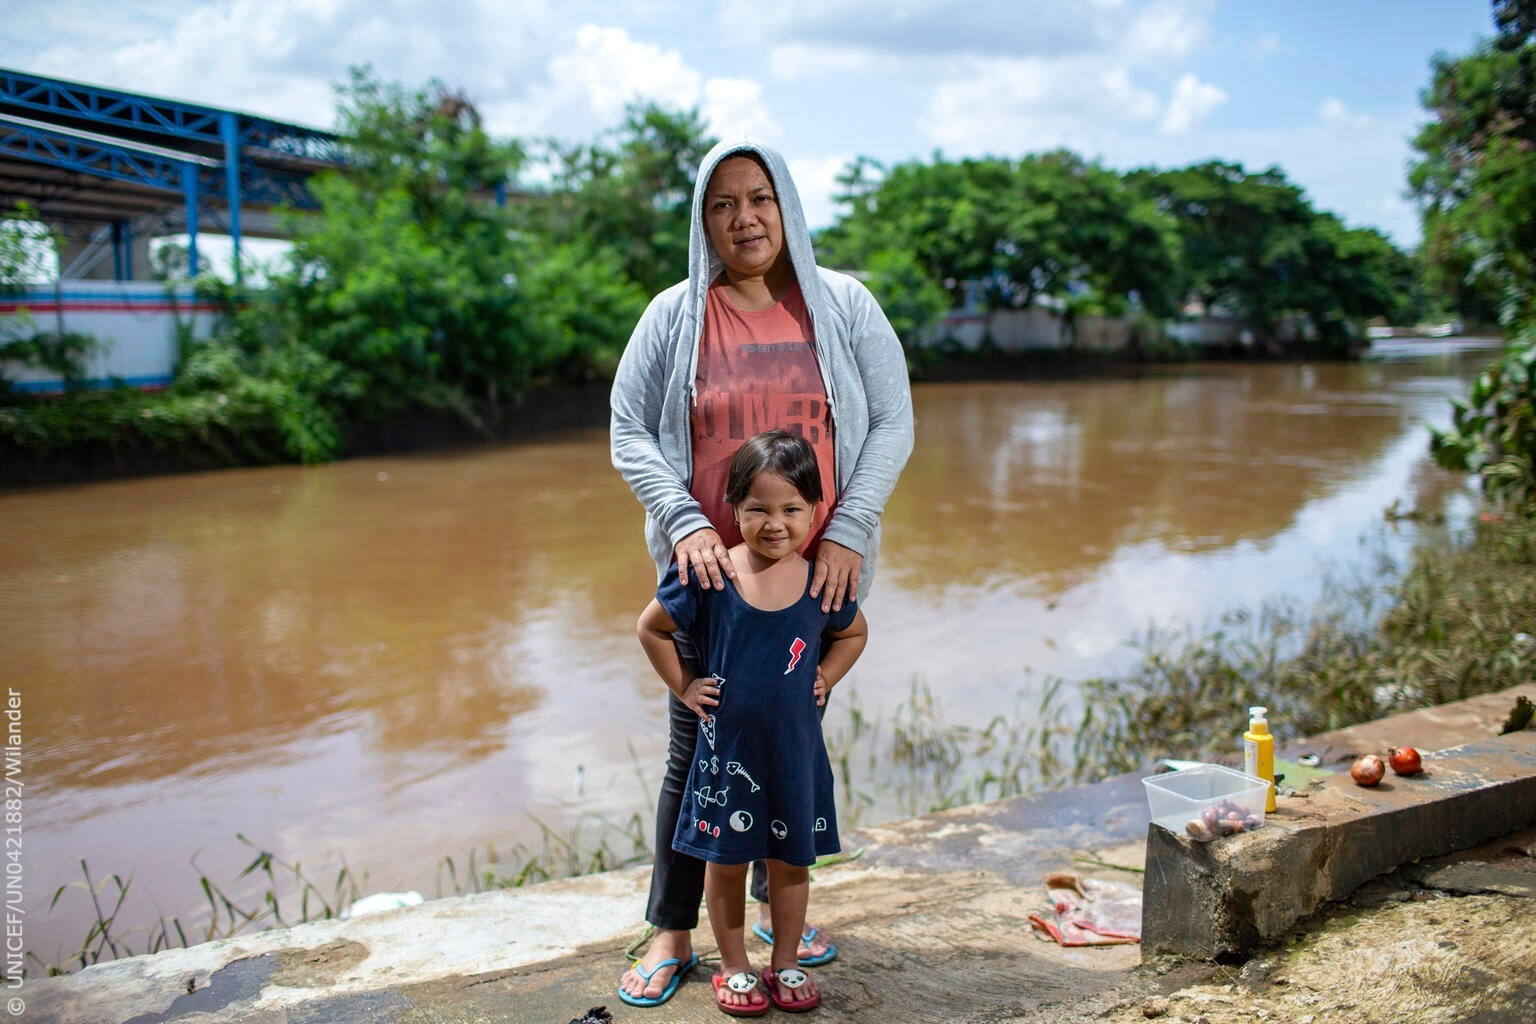 Cello, 3, and her mother Selly stand in front of an overflowing river that inundated their home in Indonesia after days of heavy rain.  Without action now, the climate crisis will worsen the inequalities that many children already face. https://t.co/LBfEojeJ2a